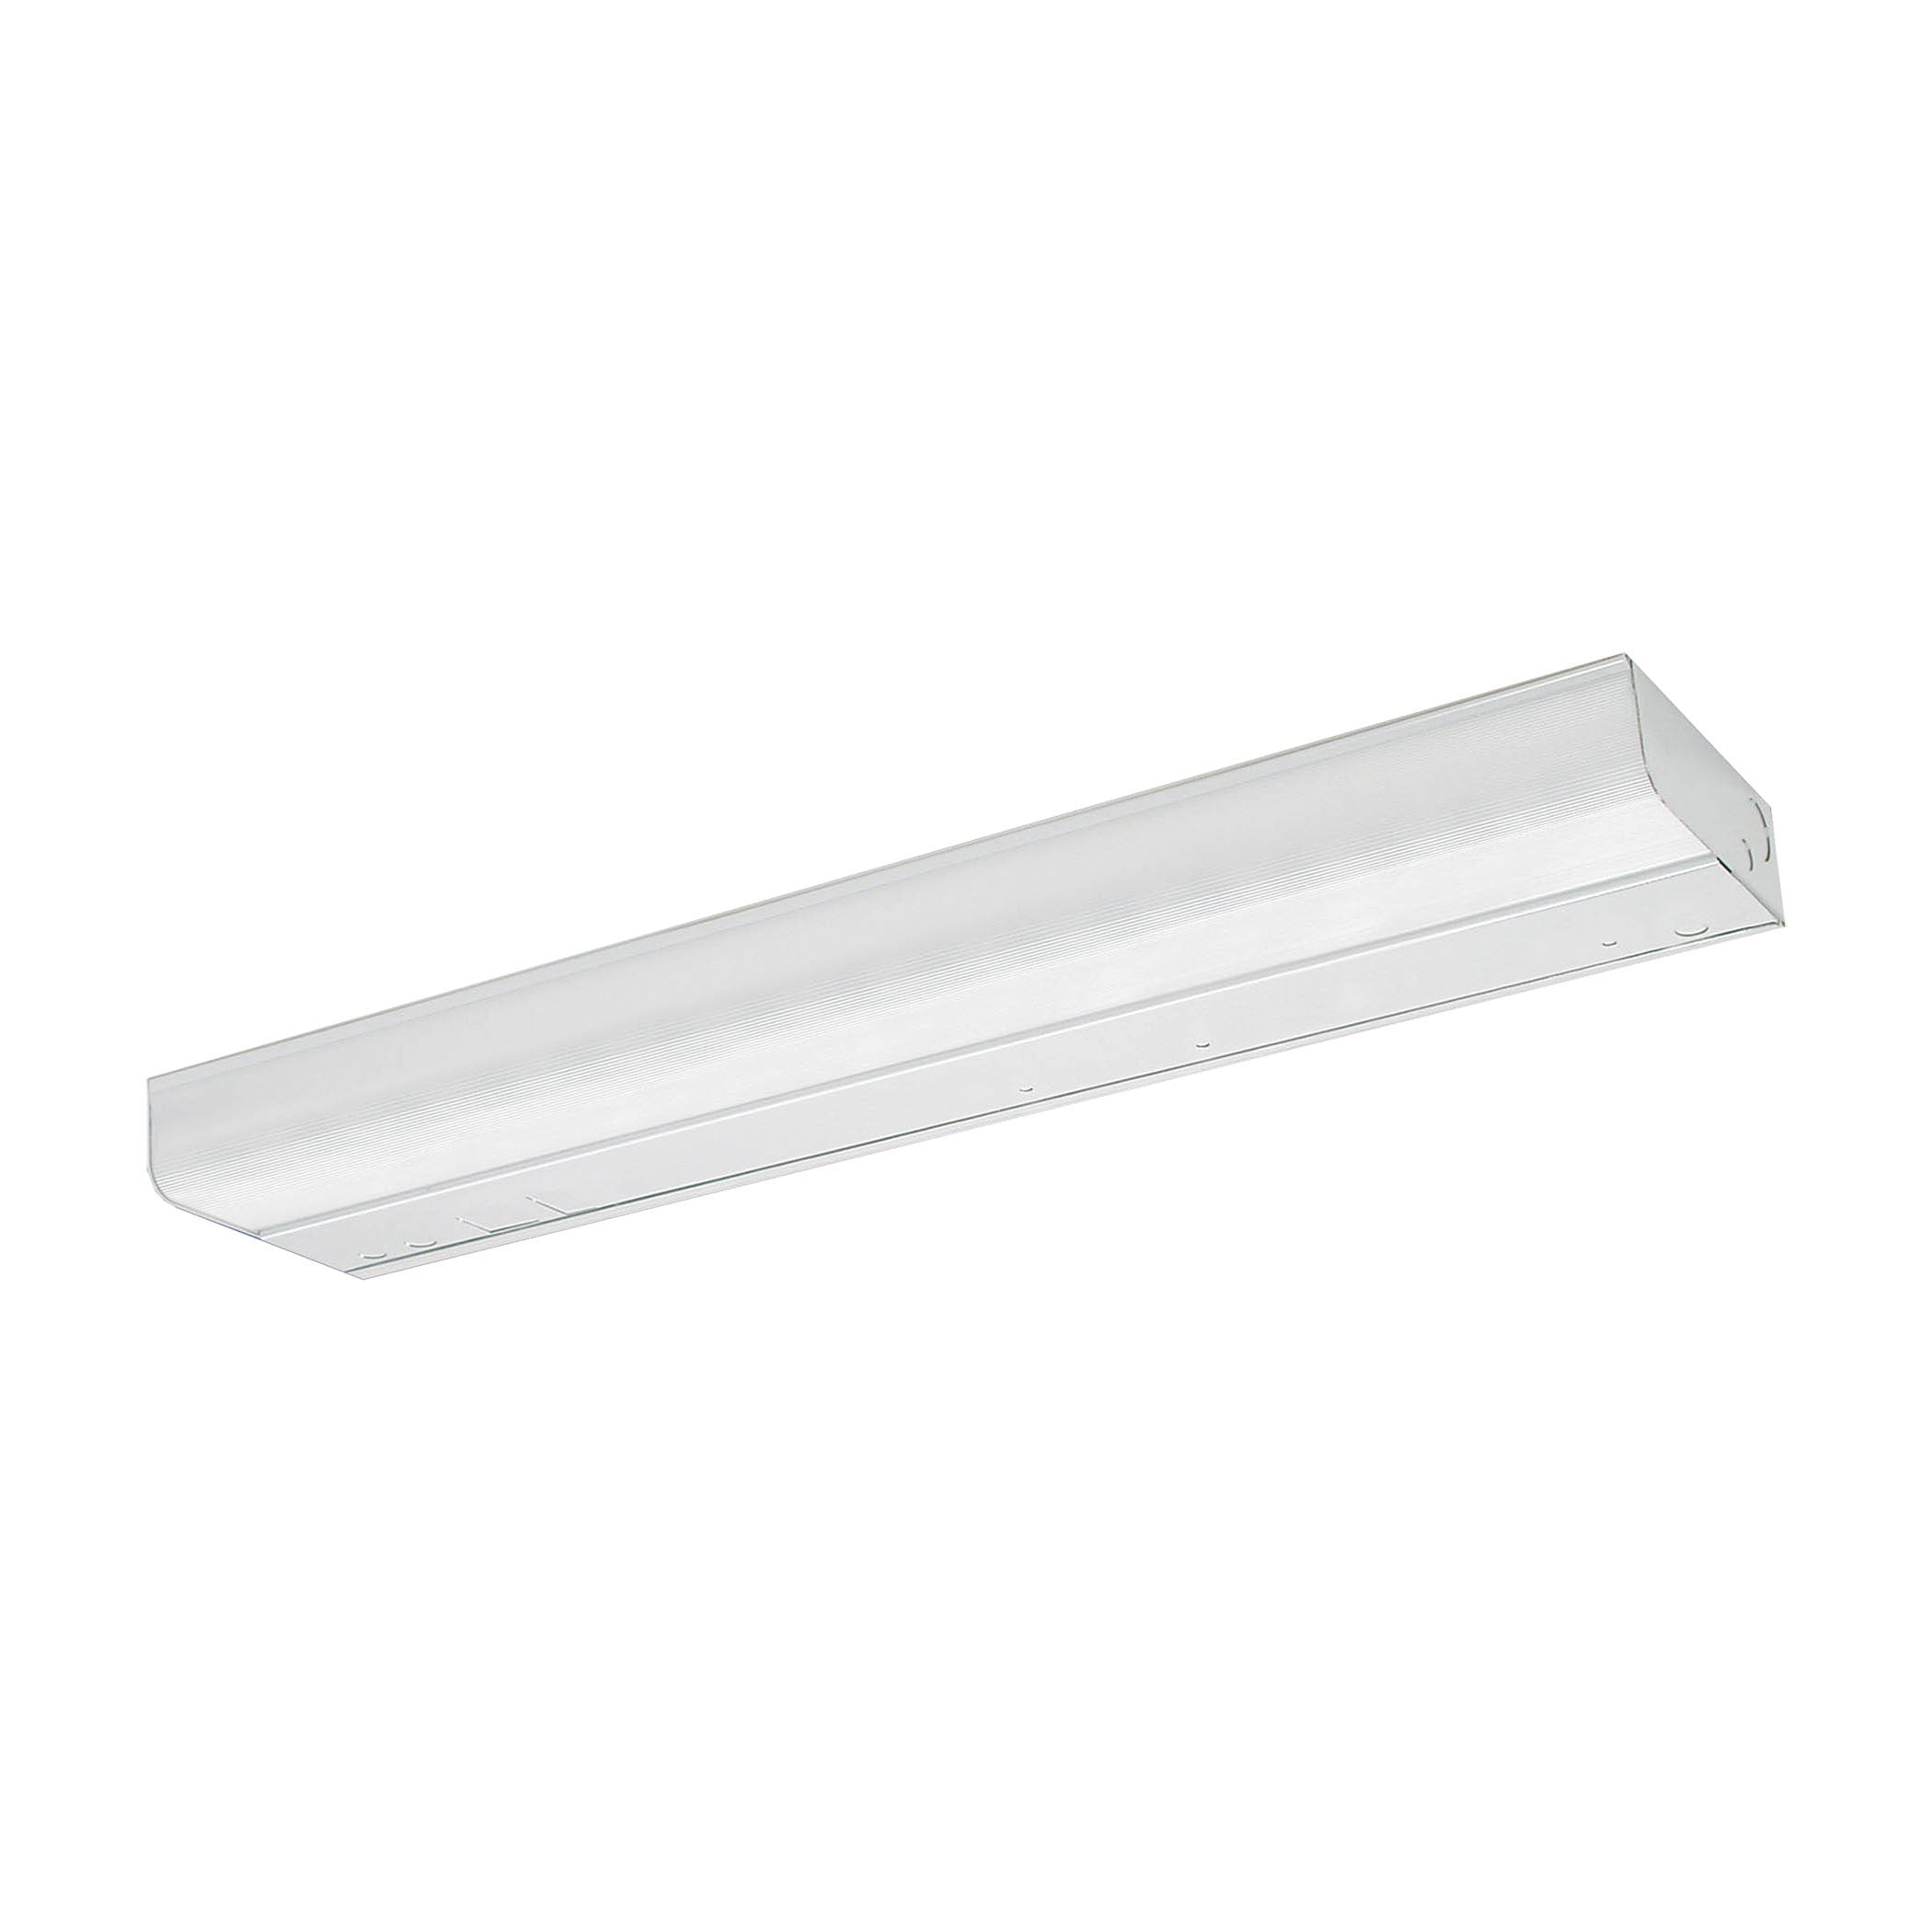 Thomas Lighting FH1158 Fluor Collection Matte White Finish Transitional Under Cabinet